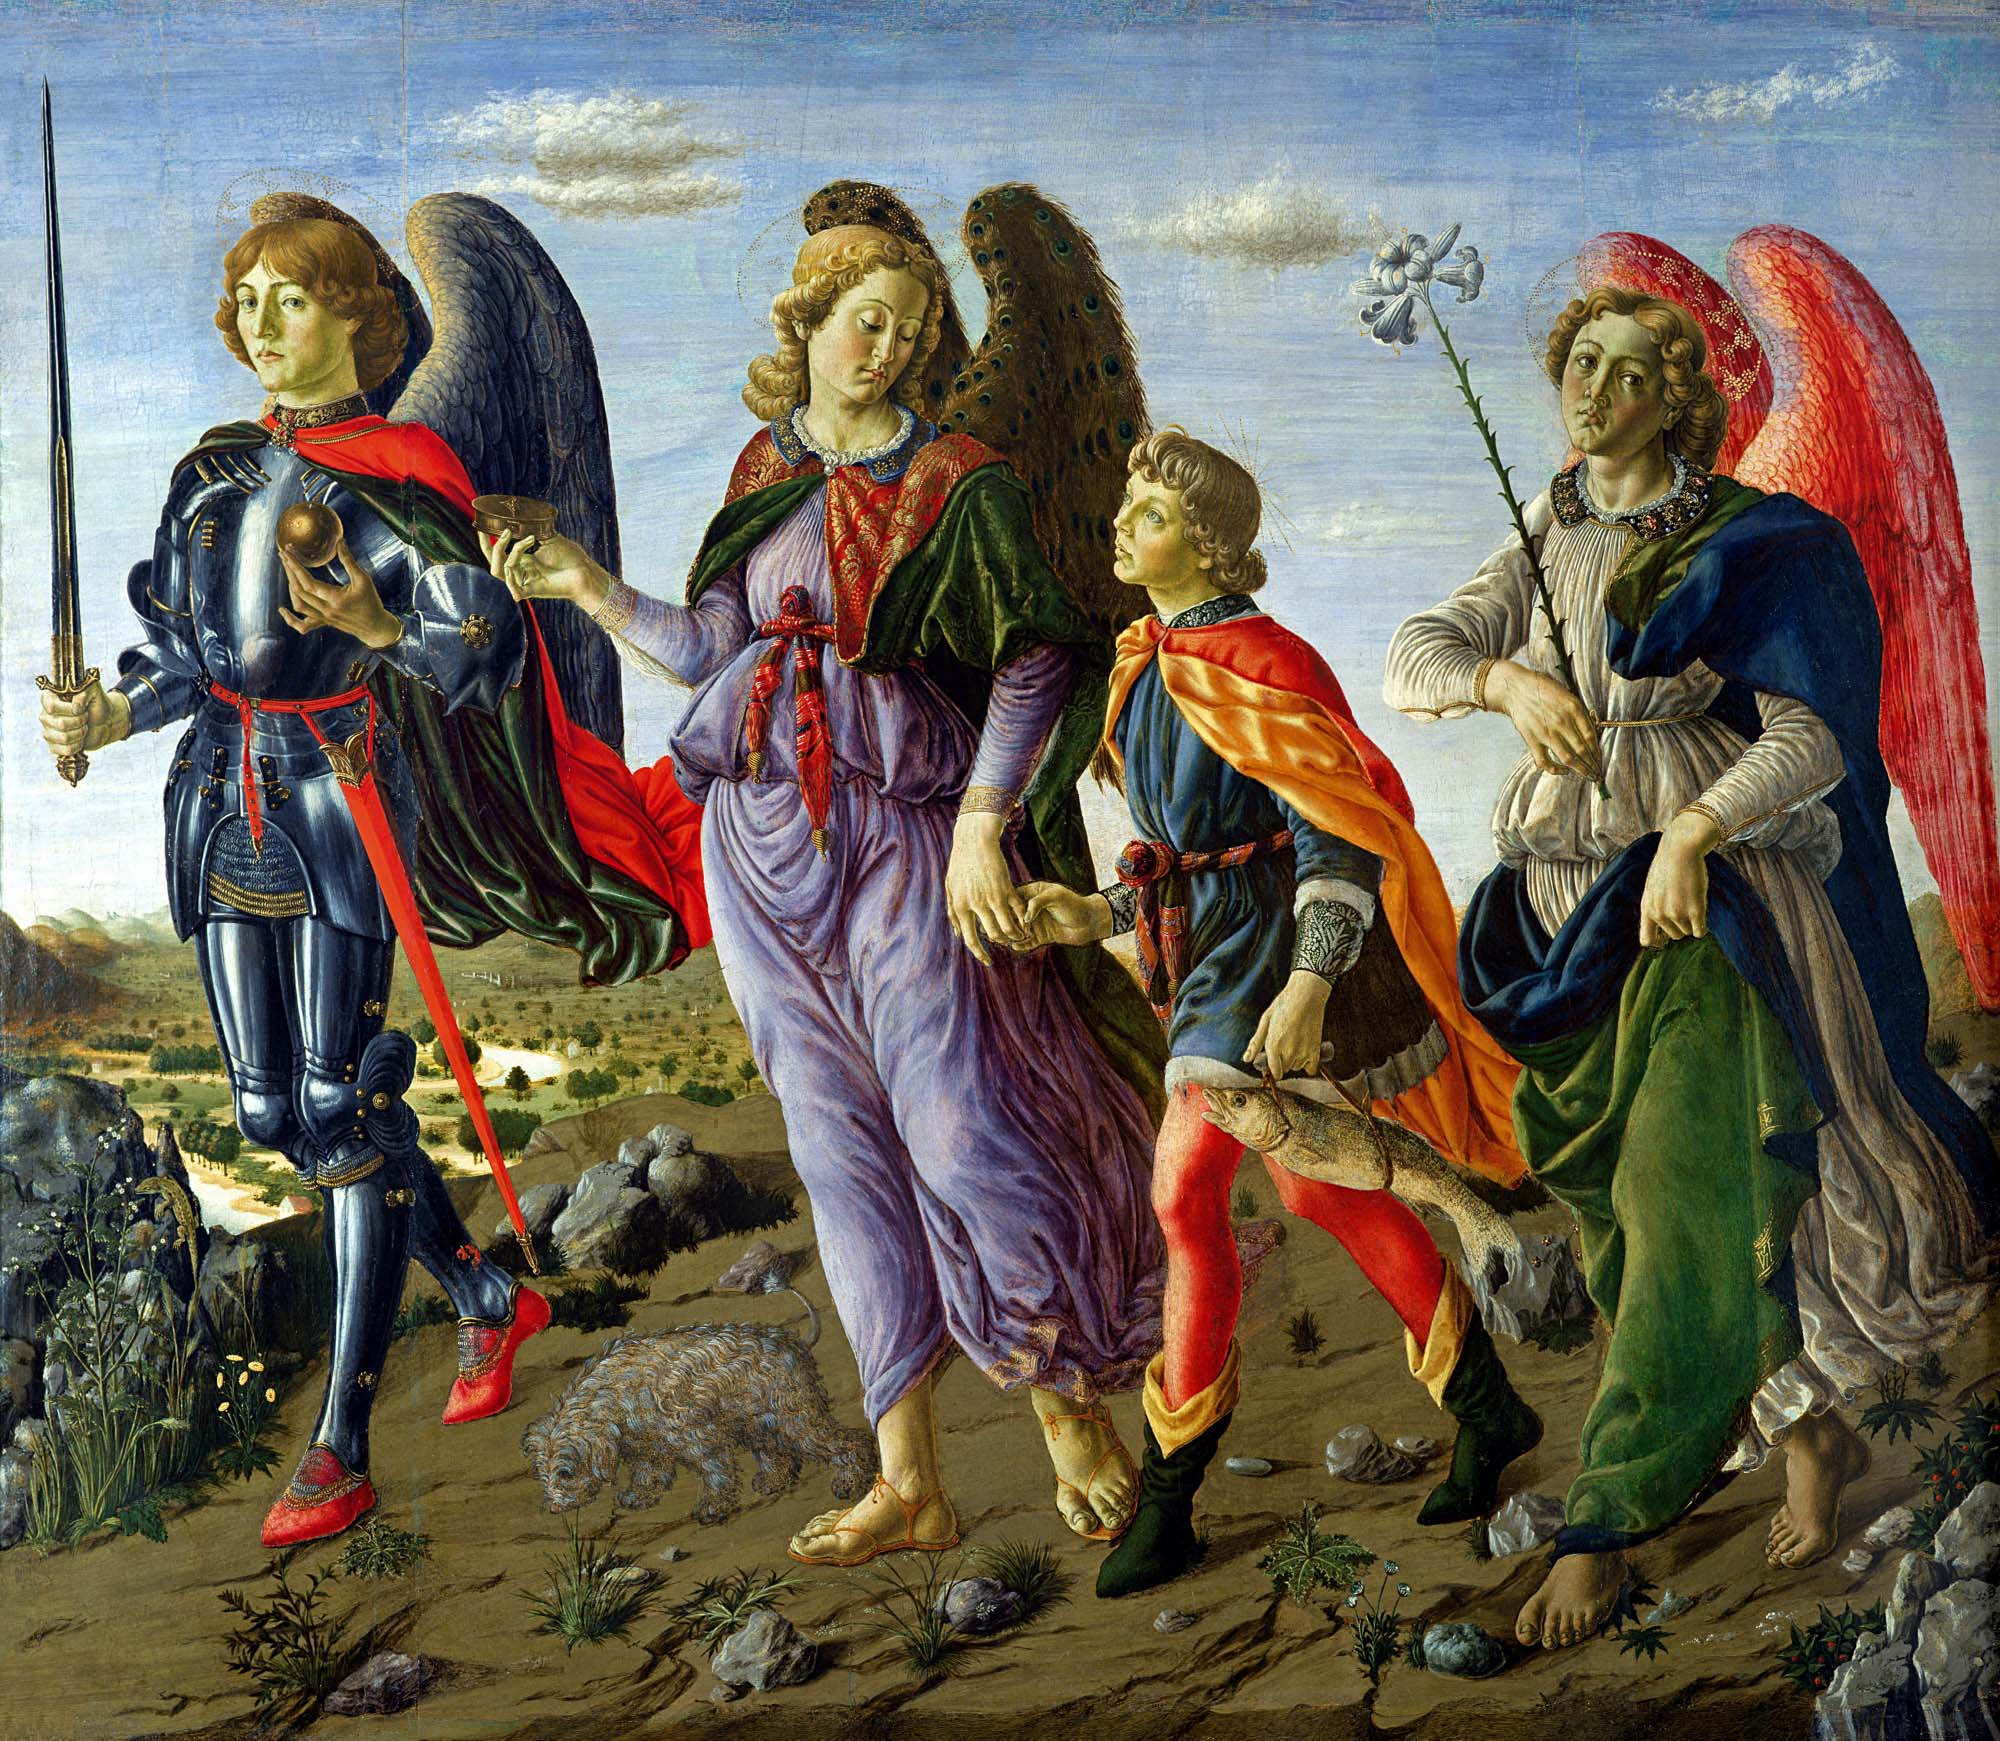 Painting by Francesco di Giovanni Botticini (1446-1498) of the three archangels (from left to right Michael, Raphael, Gabriel) with young Tobias (1470 - Galleria degli Uffizi, Florence, Italy).